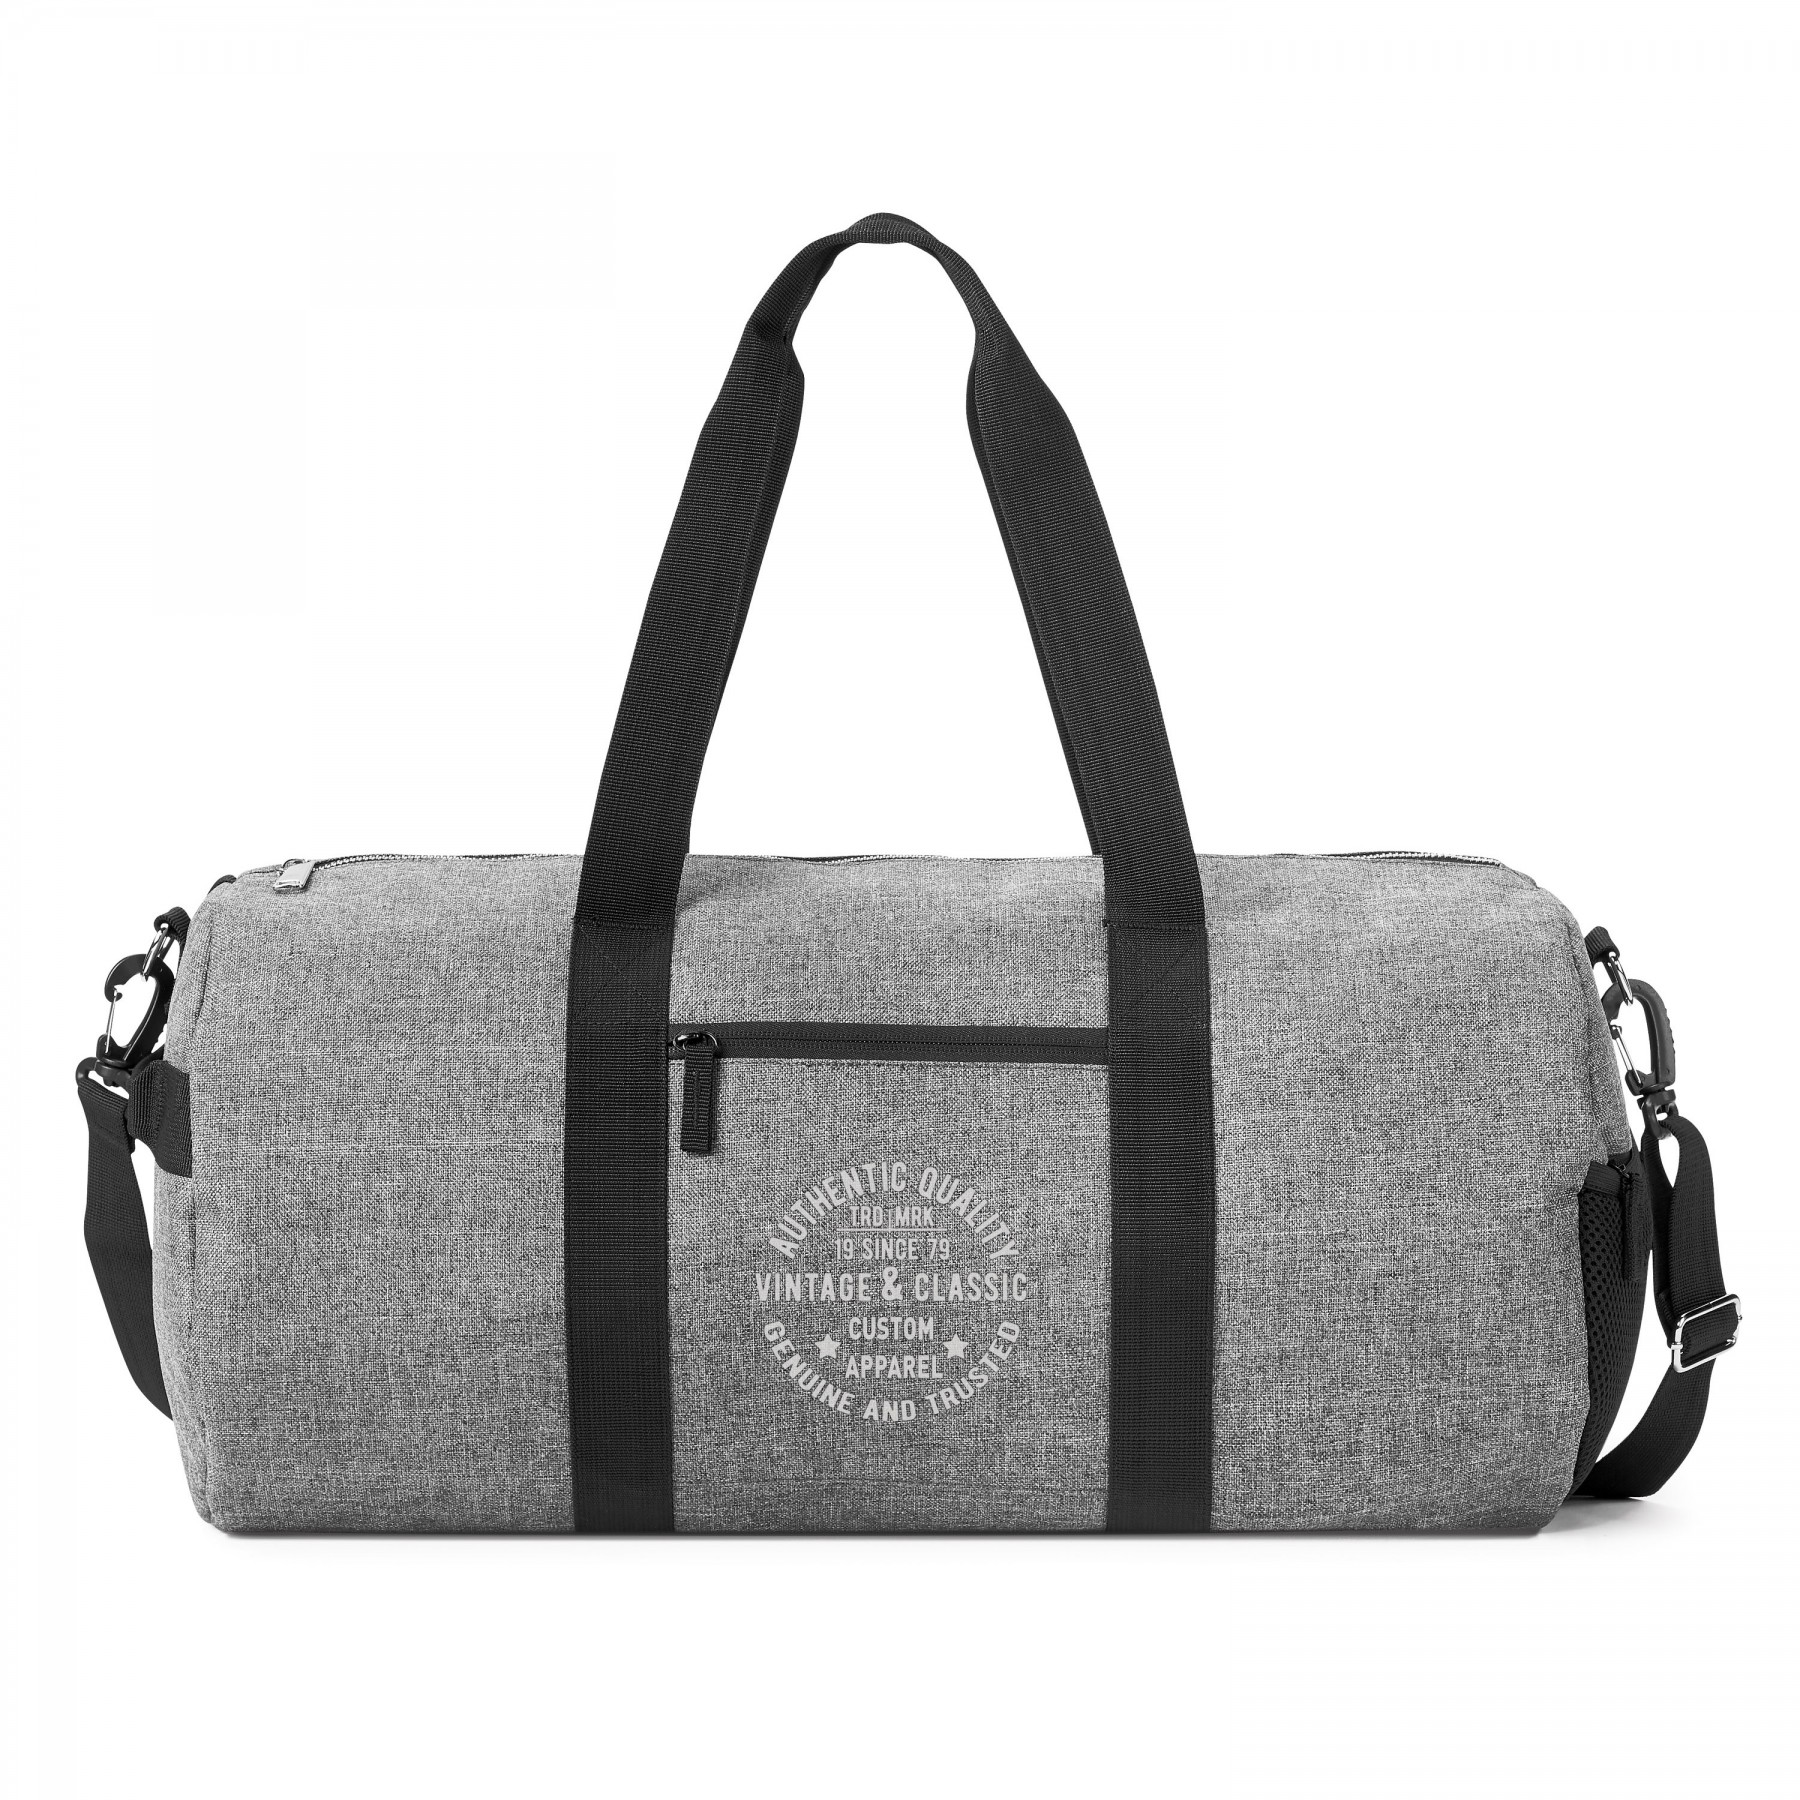 Nomad Must Haves 30l Round Duffle, BG205, One Colour Imprint